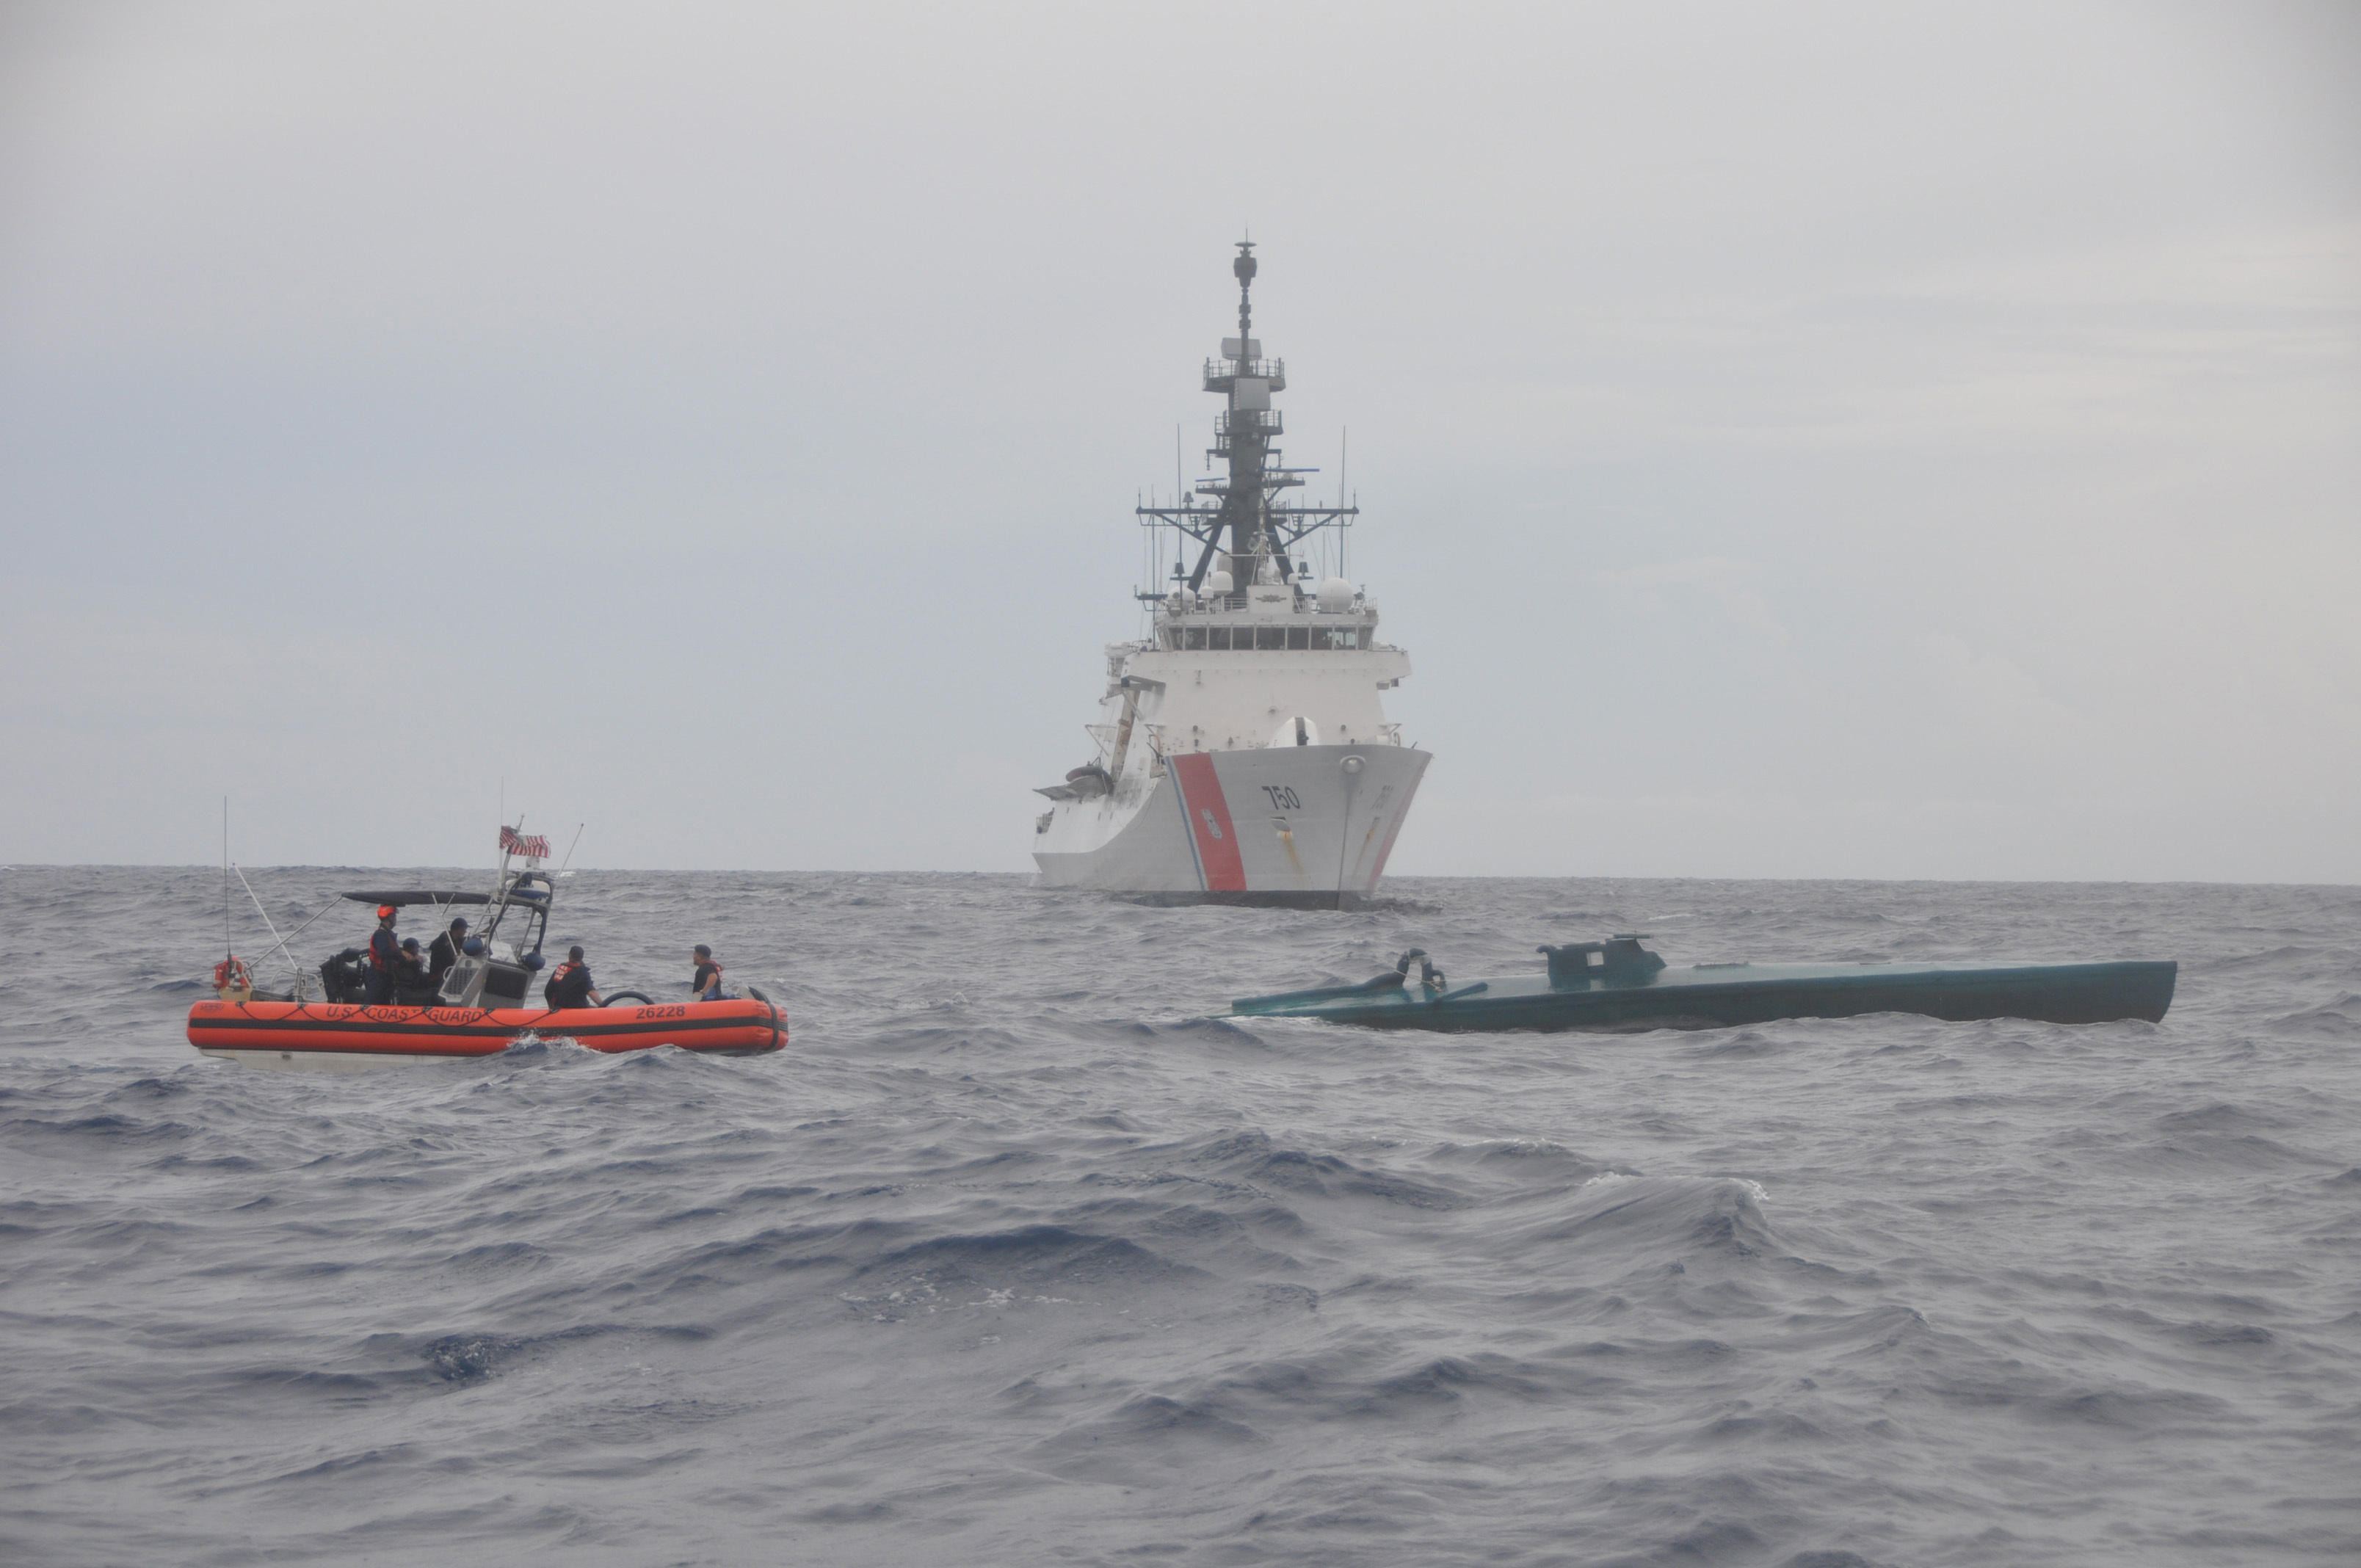 A Coast Guard Cutter Bertholf boarding team aboard an Over the Horizon Long-Range Interceptor boat conducts an interdiction of a self-propelled semi-submersible vessel suspected of smuggling 7.5 tons of cocaine in the Eastern Pacific Ocean, Aug. 31, 2015. The seized contraband is worth an estimated $227 million. (U.S. Coast Guard photo)